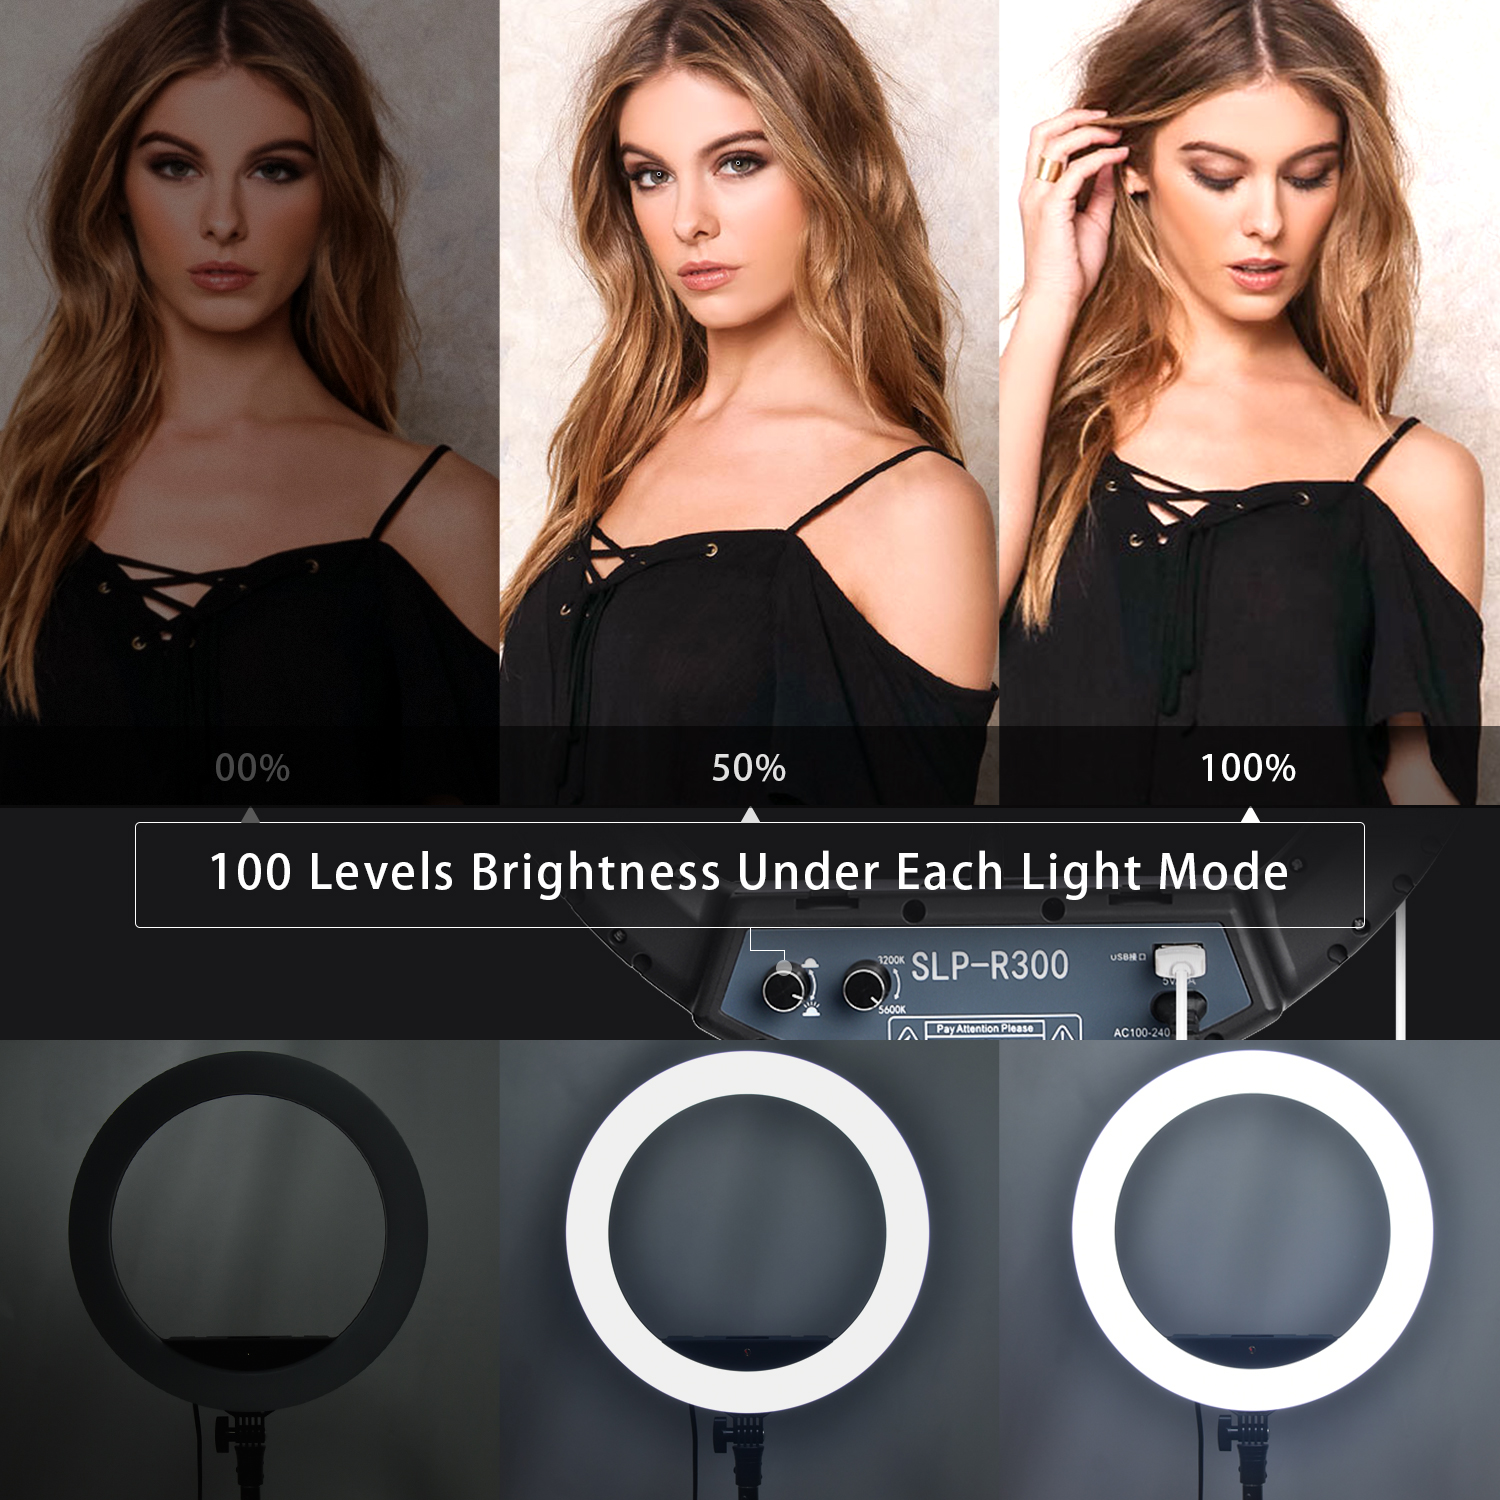 H28a1ab7c5d68410aaf078af57b9022a6S fosoto LED Ring Light Selfie Photo Photography Lighting Ringlight lamp With Tripod Stand For Photo Studio Makeup Video Live Show